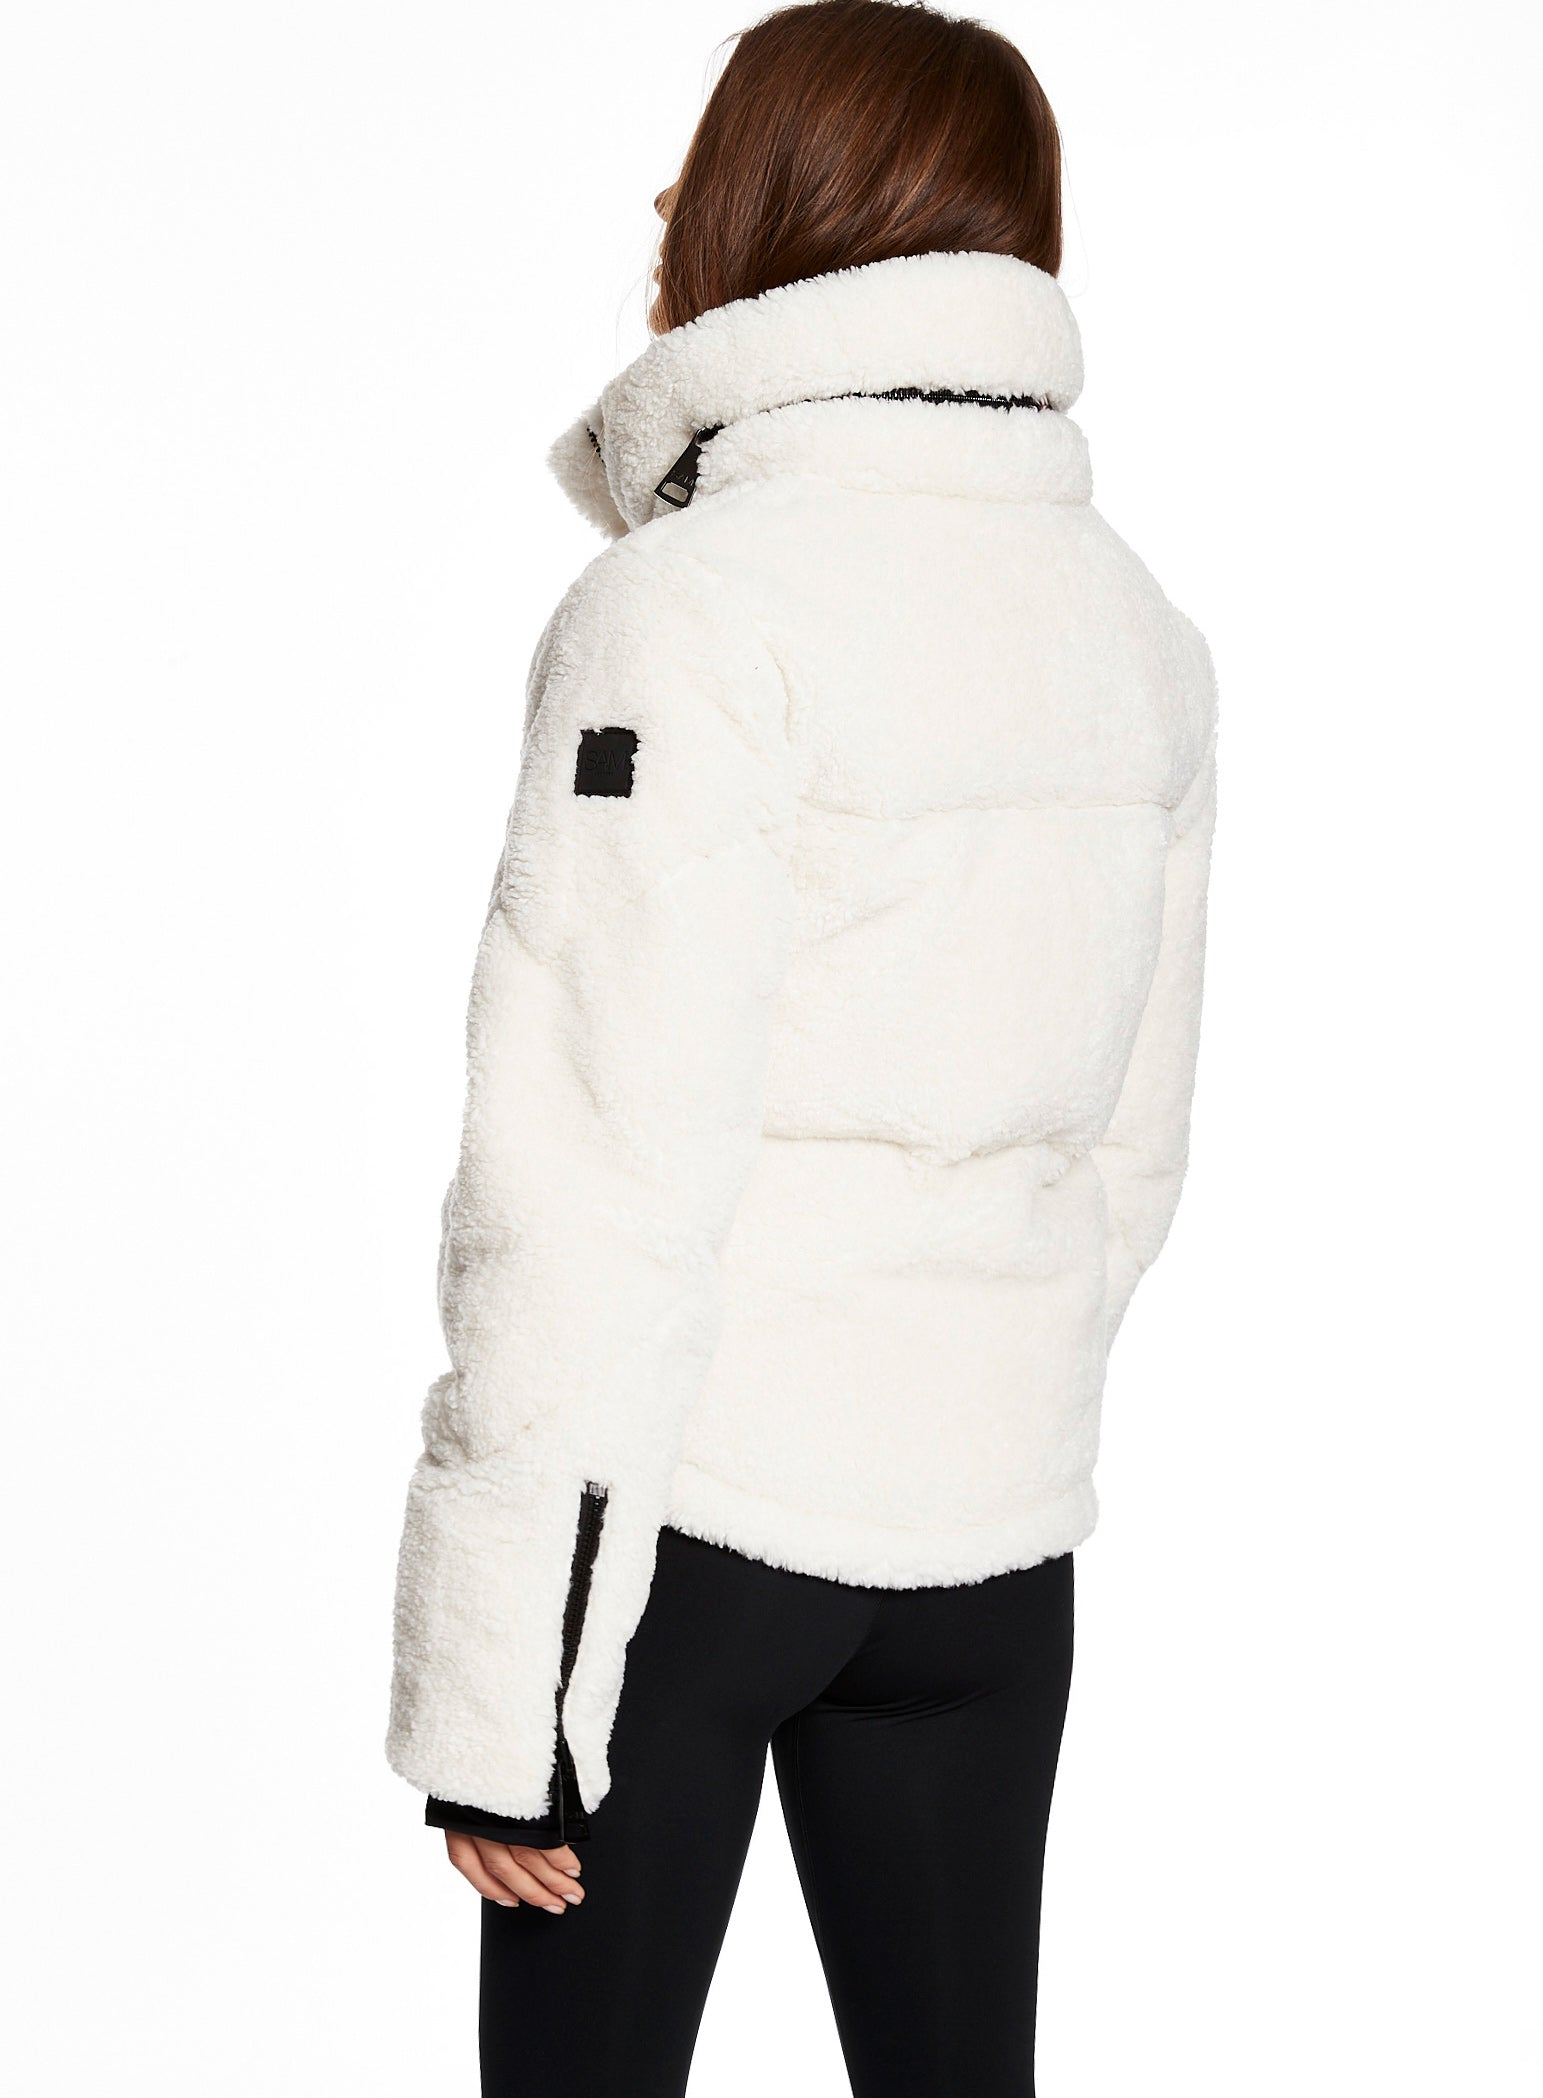 SHERPA ATHLETE SHERPA ATHLETE - SAM. New York Sam nyc jacket